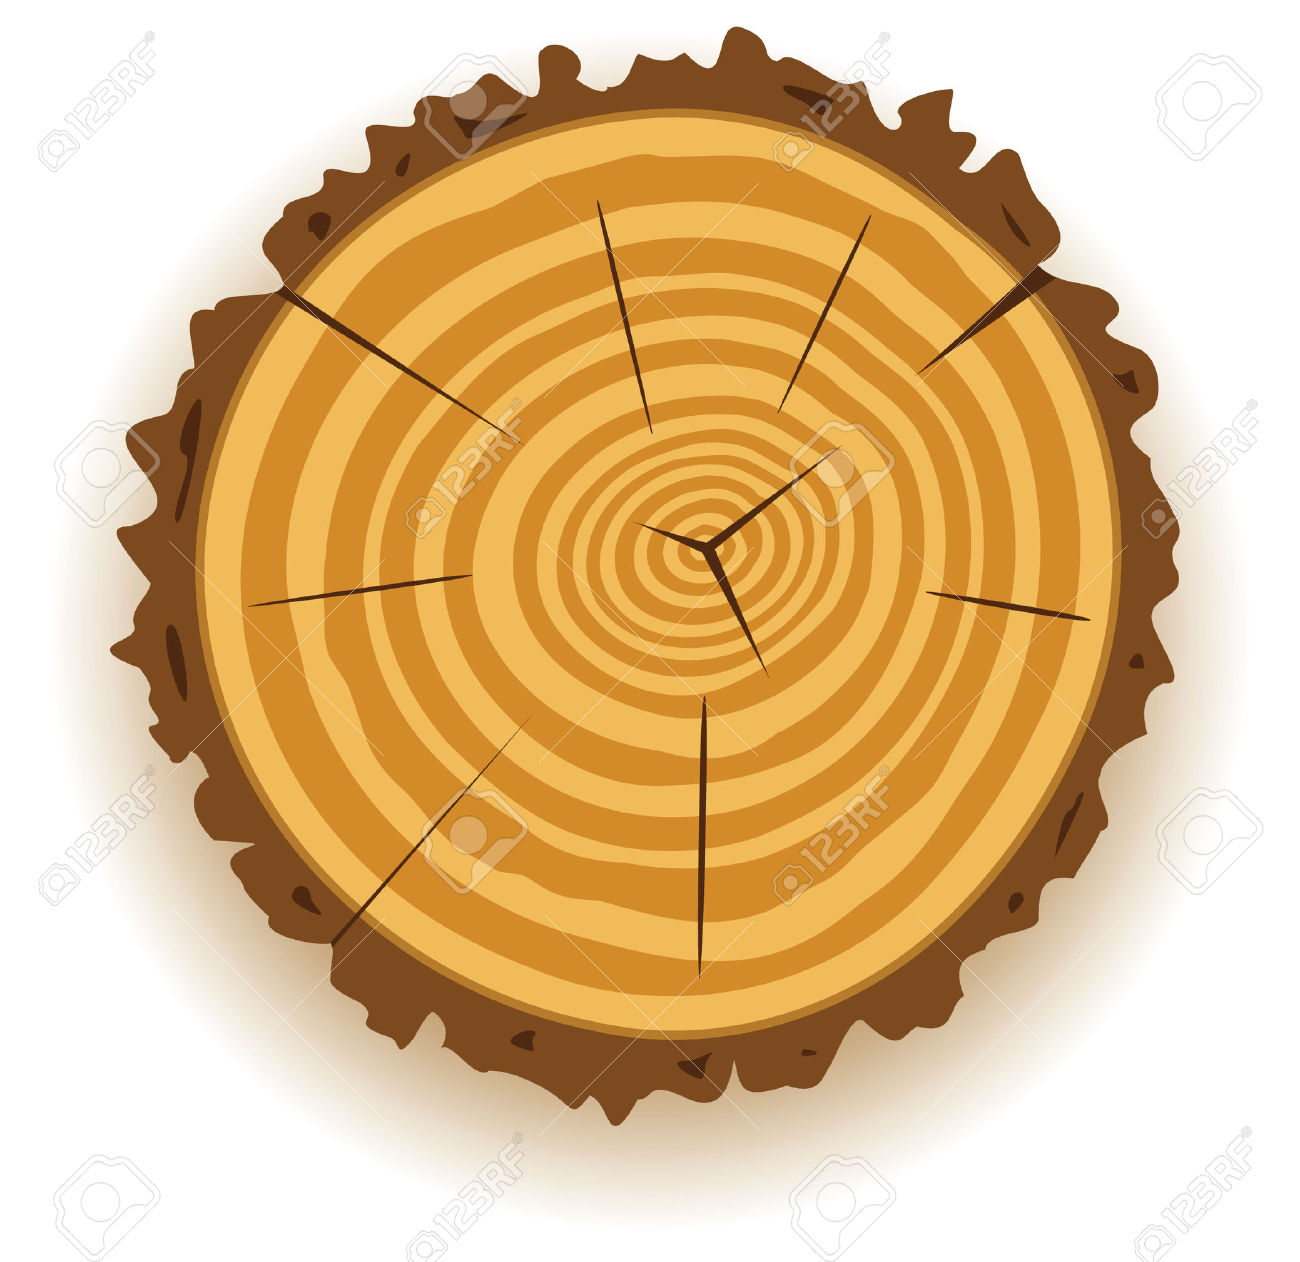 Free Log Tree Cliparts, Download Free Clip Art, Free Clip.